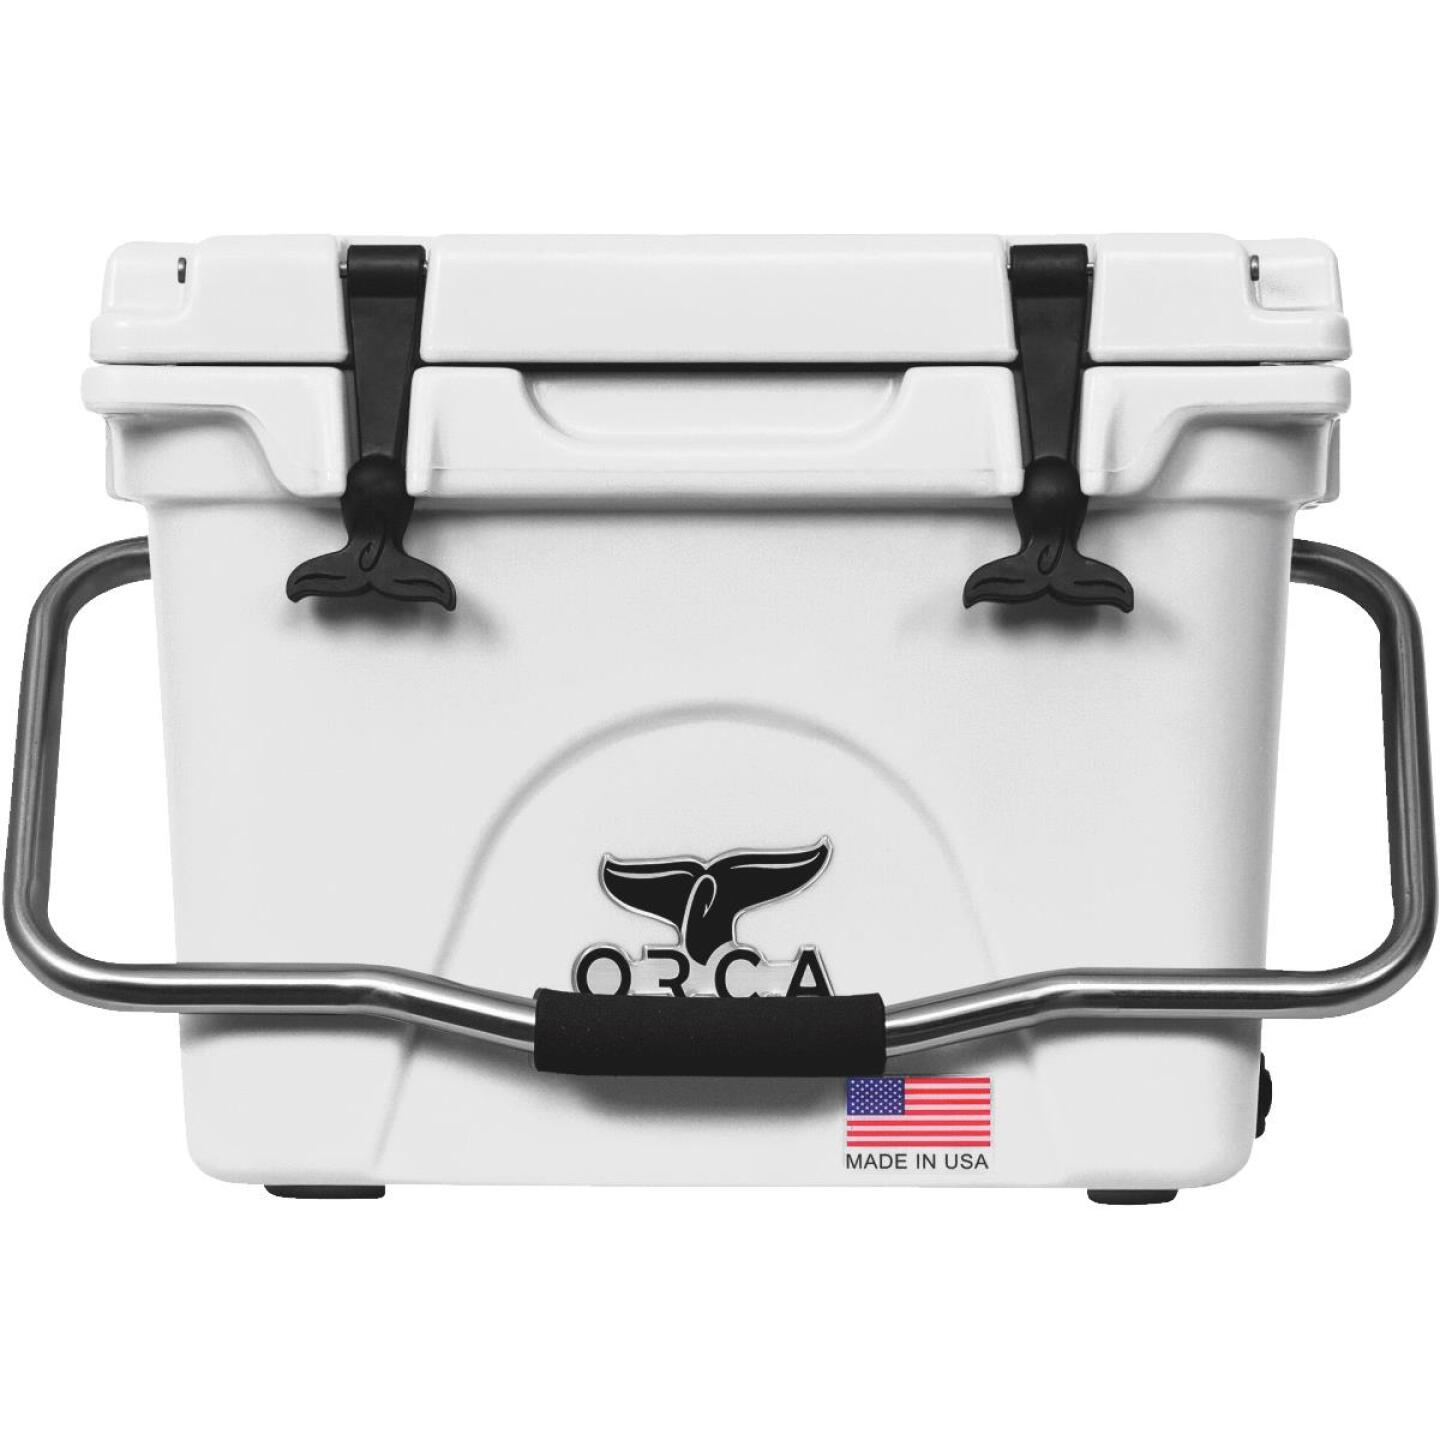 Orca 20 Qt. 18-Can Cooler, White Image 1